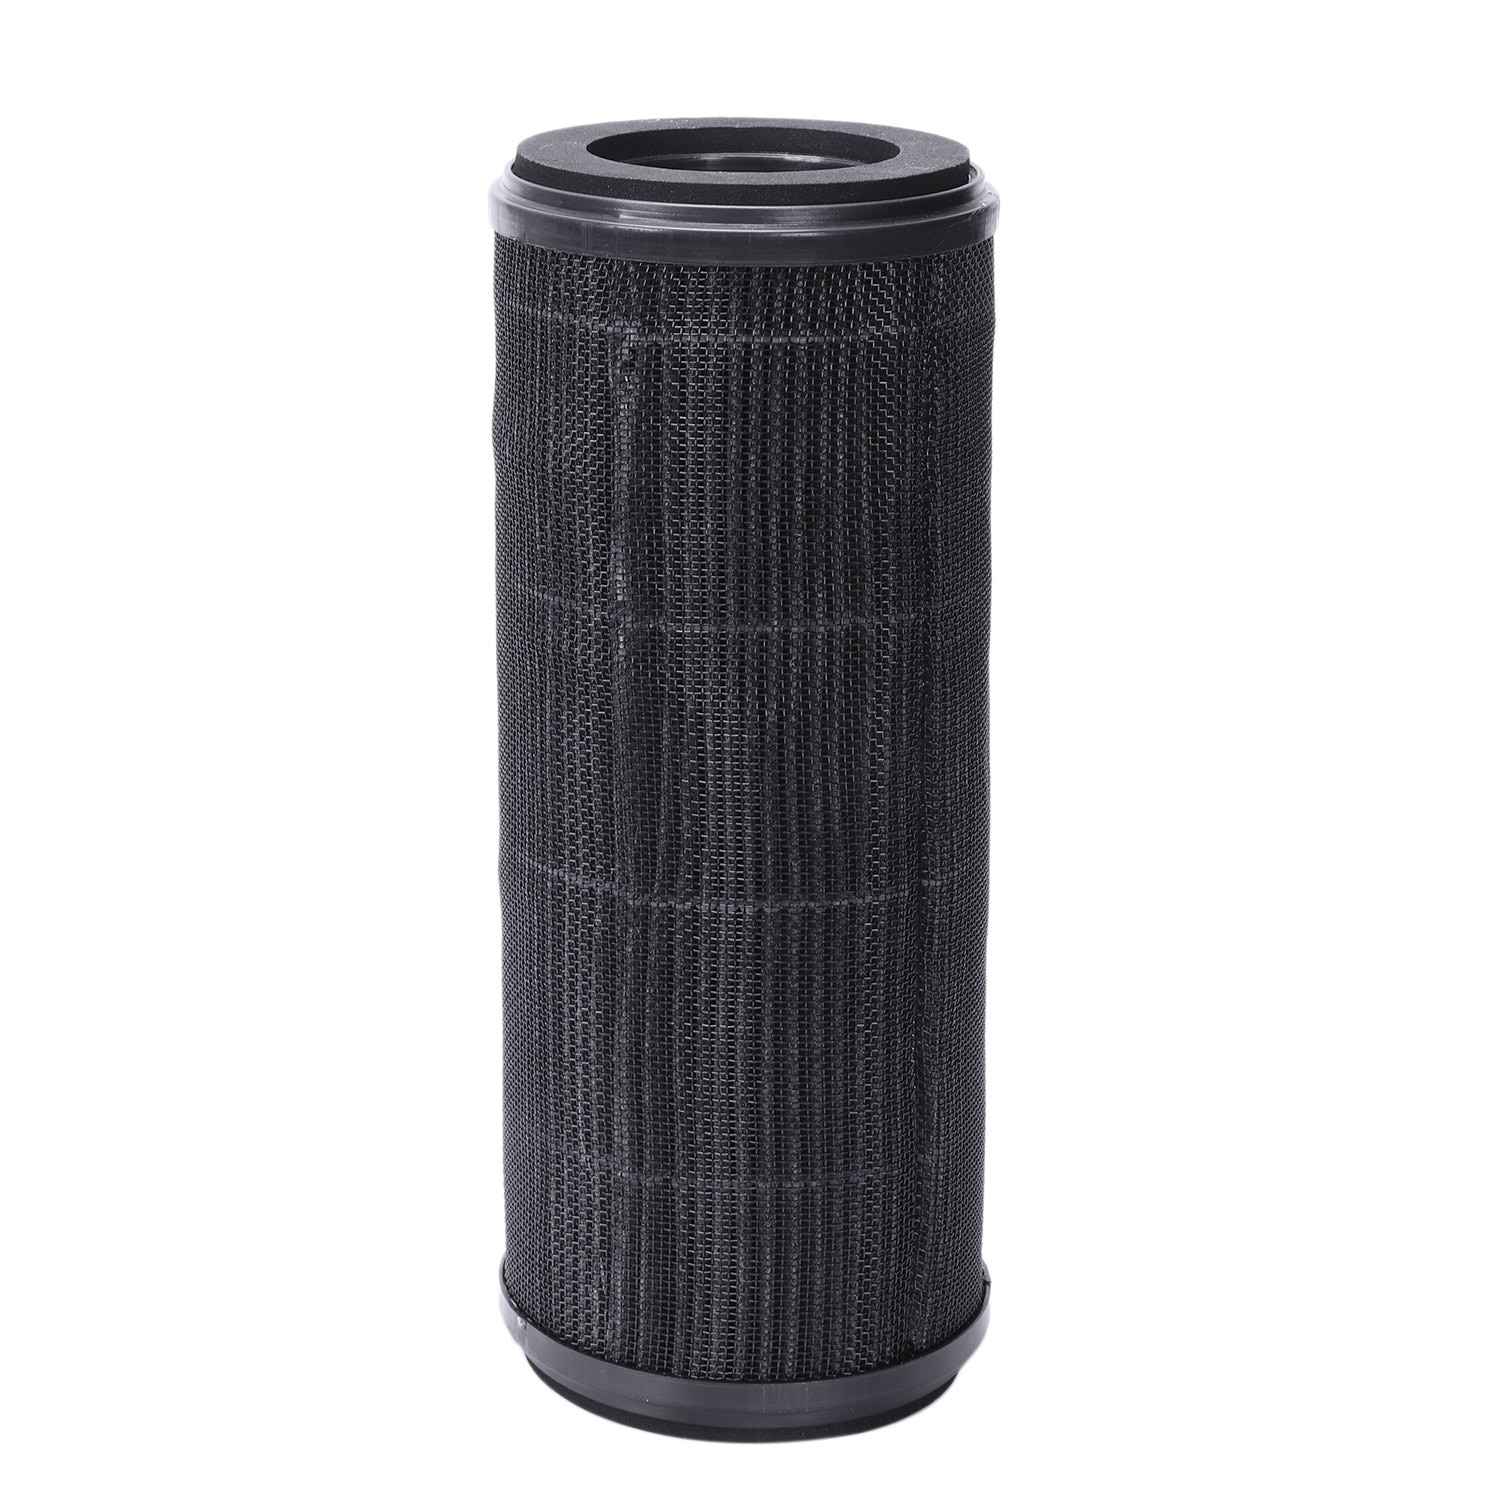 For Xiaomi Car Air Purifier Filter Mijia Activated Carbon Enhanced Version Freshener Part Formaldehyde Purification